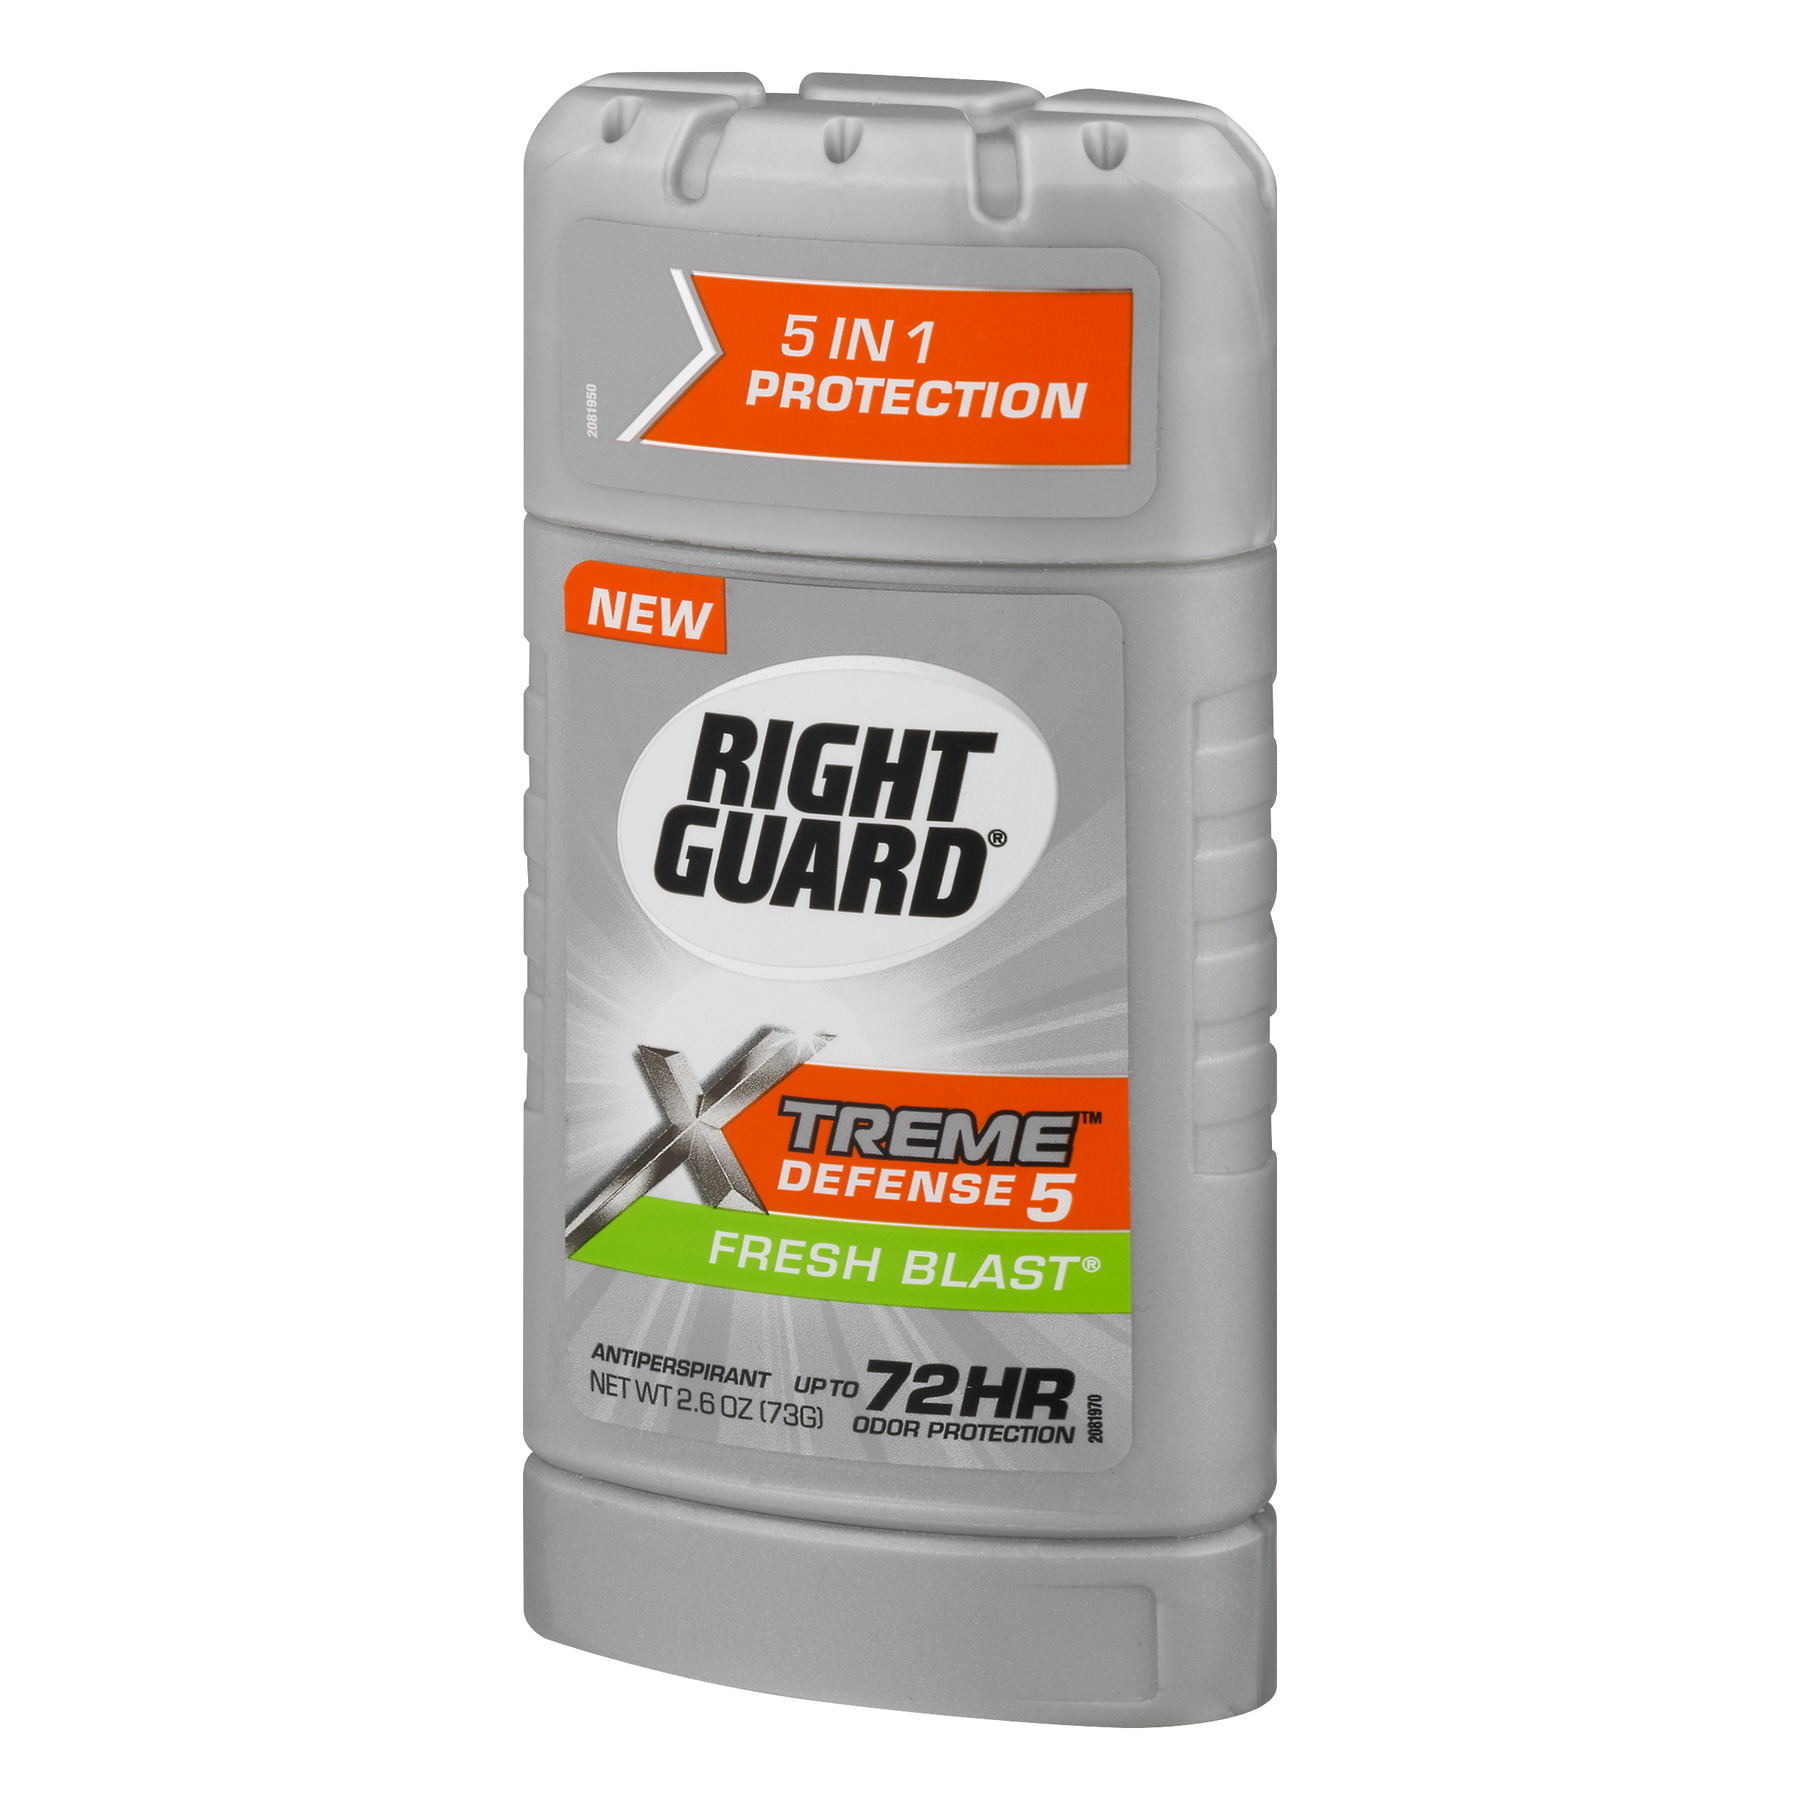 Right Guard Xtreme Defense 5 Antiperspirant Deodorant Invisible Solid Stick, Fresh Blast, 2.6 Oz